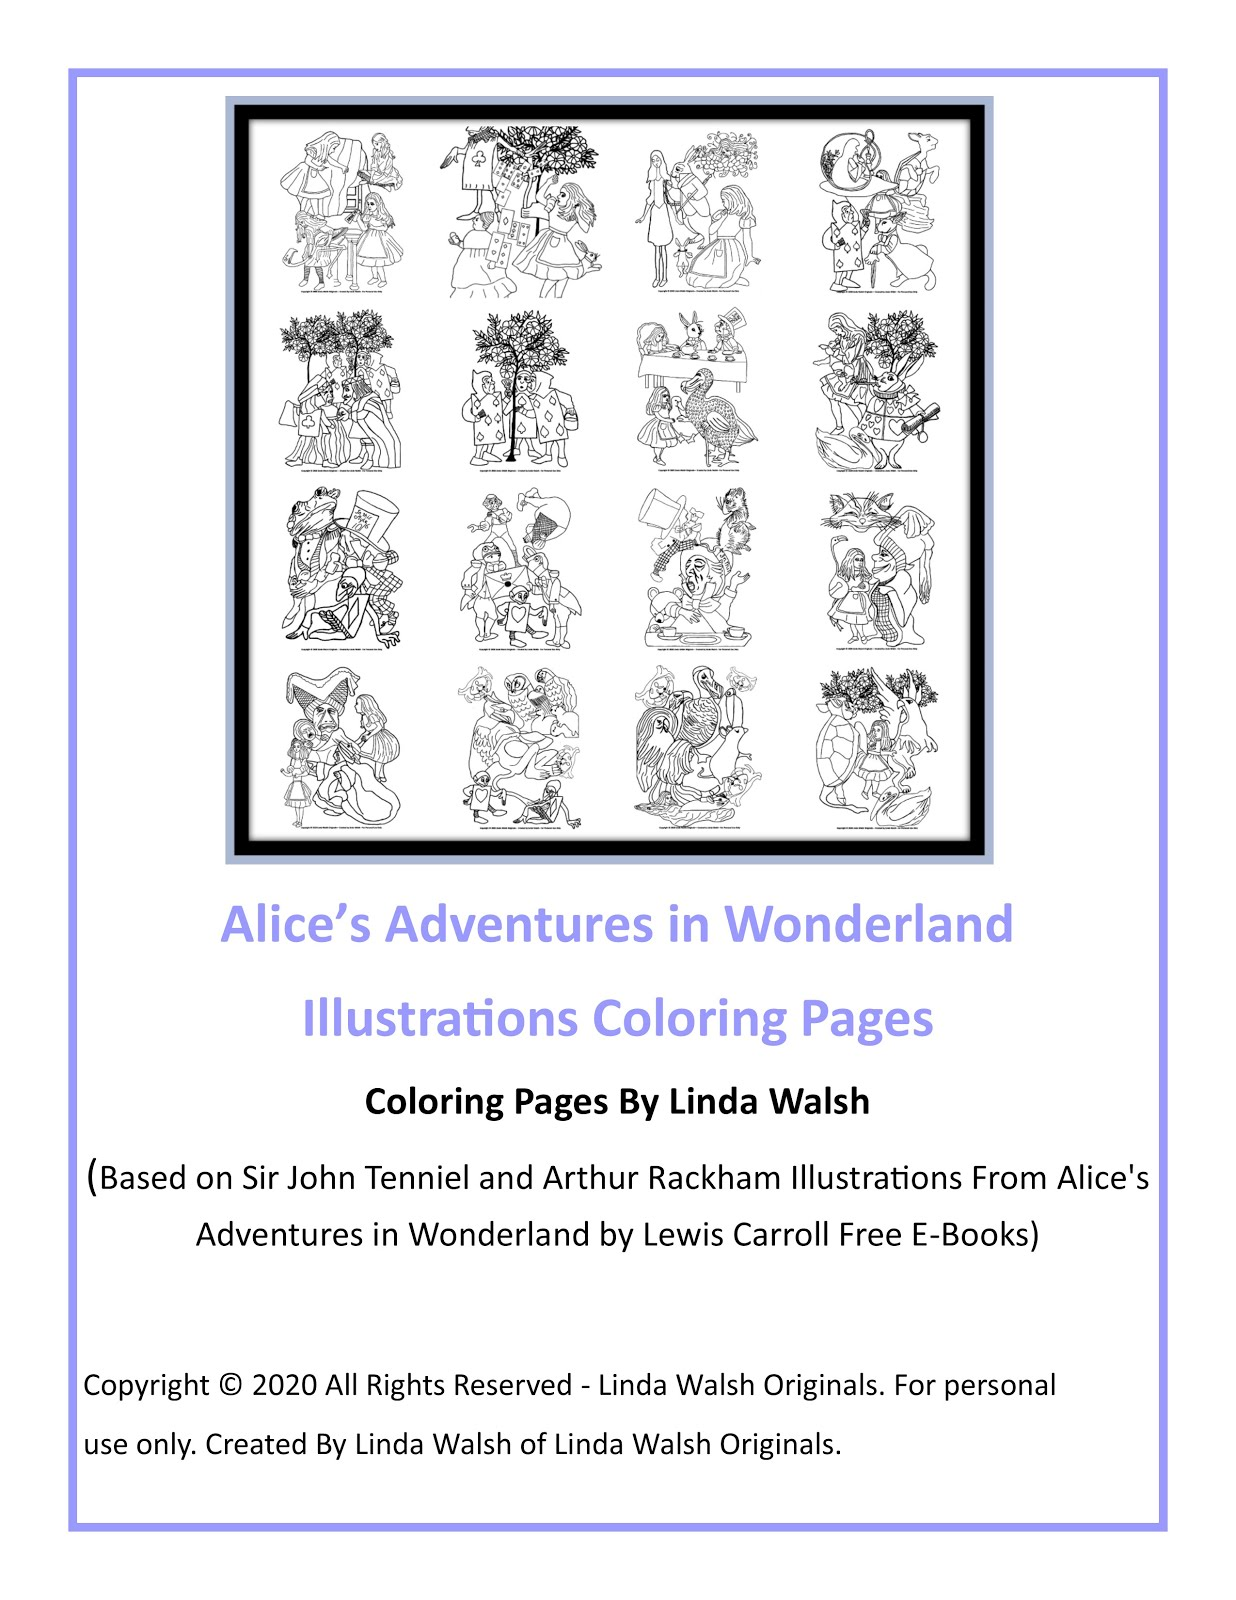 Alice's Adventurers In Wonderland Free Coloring Pages E-Book